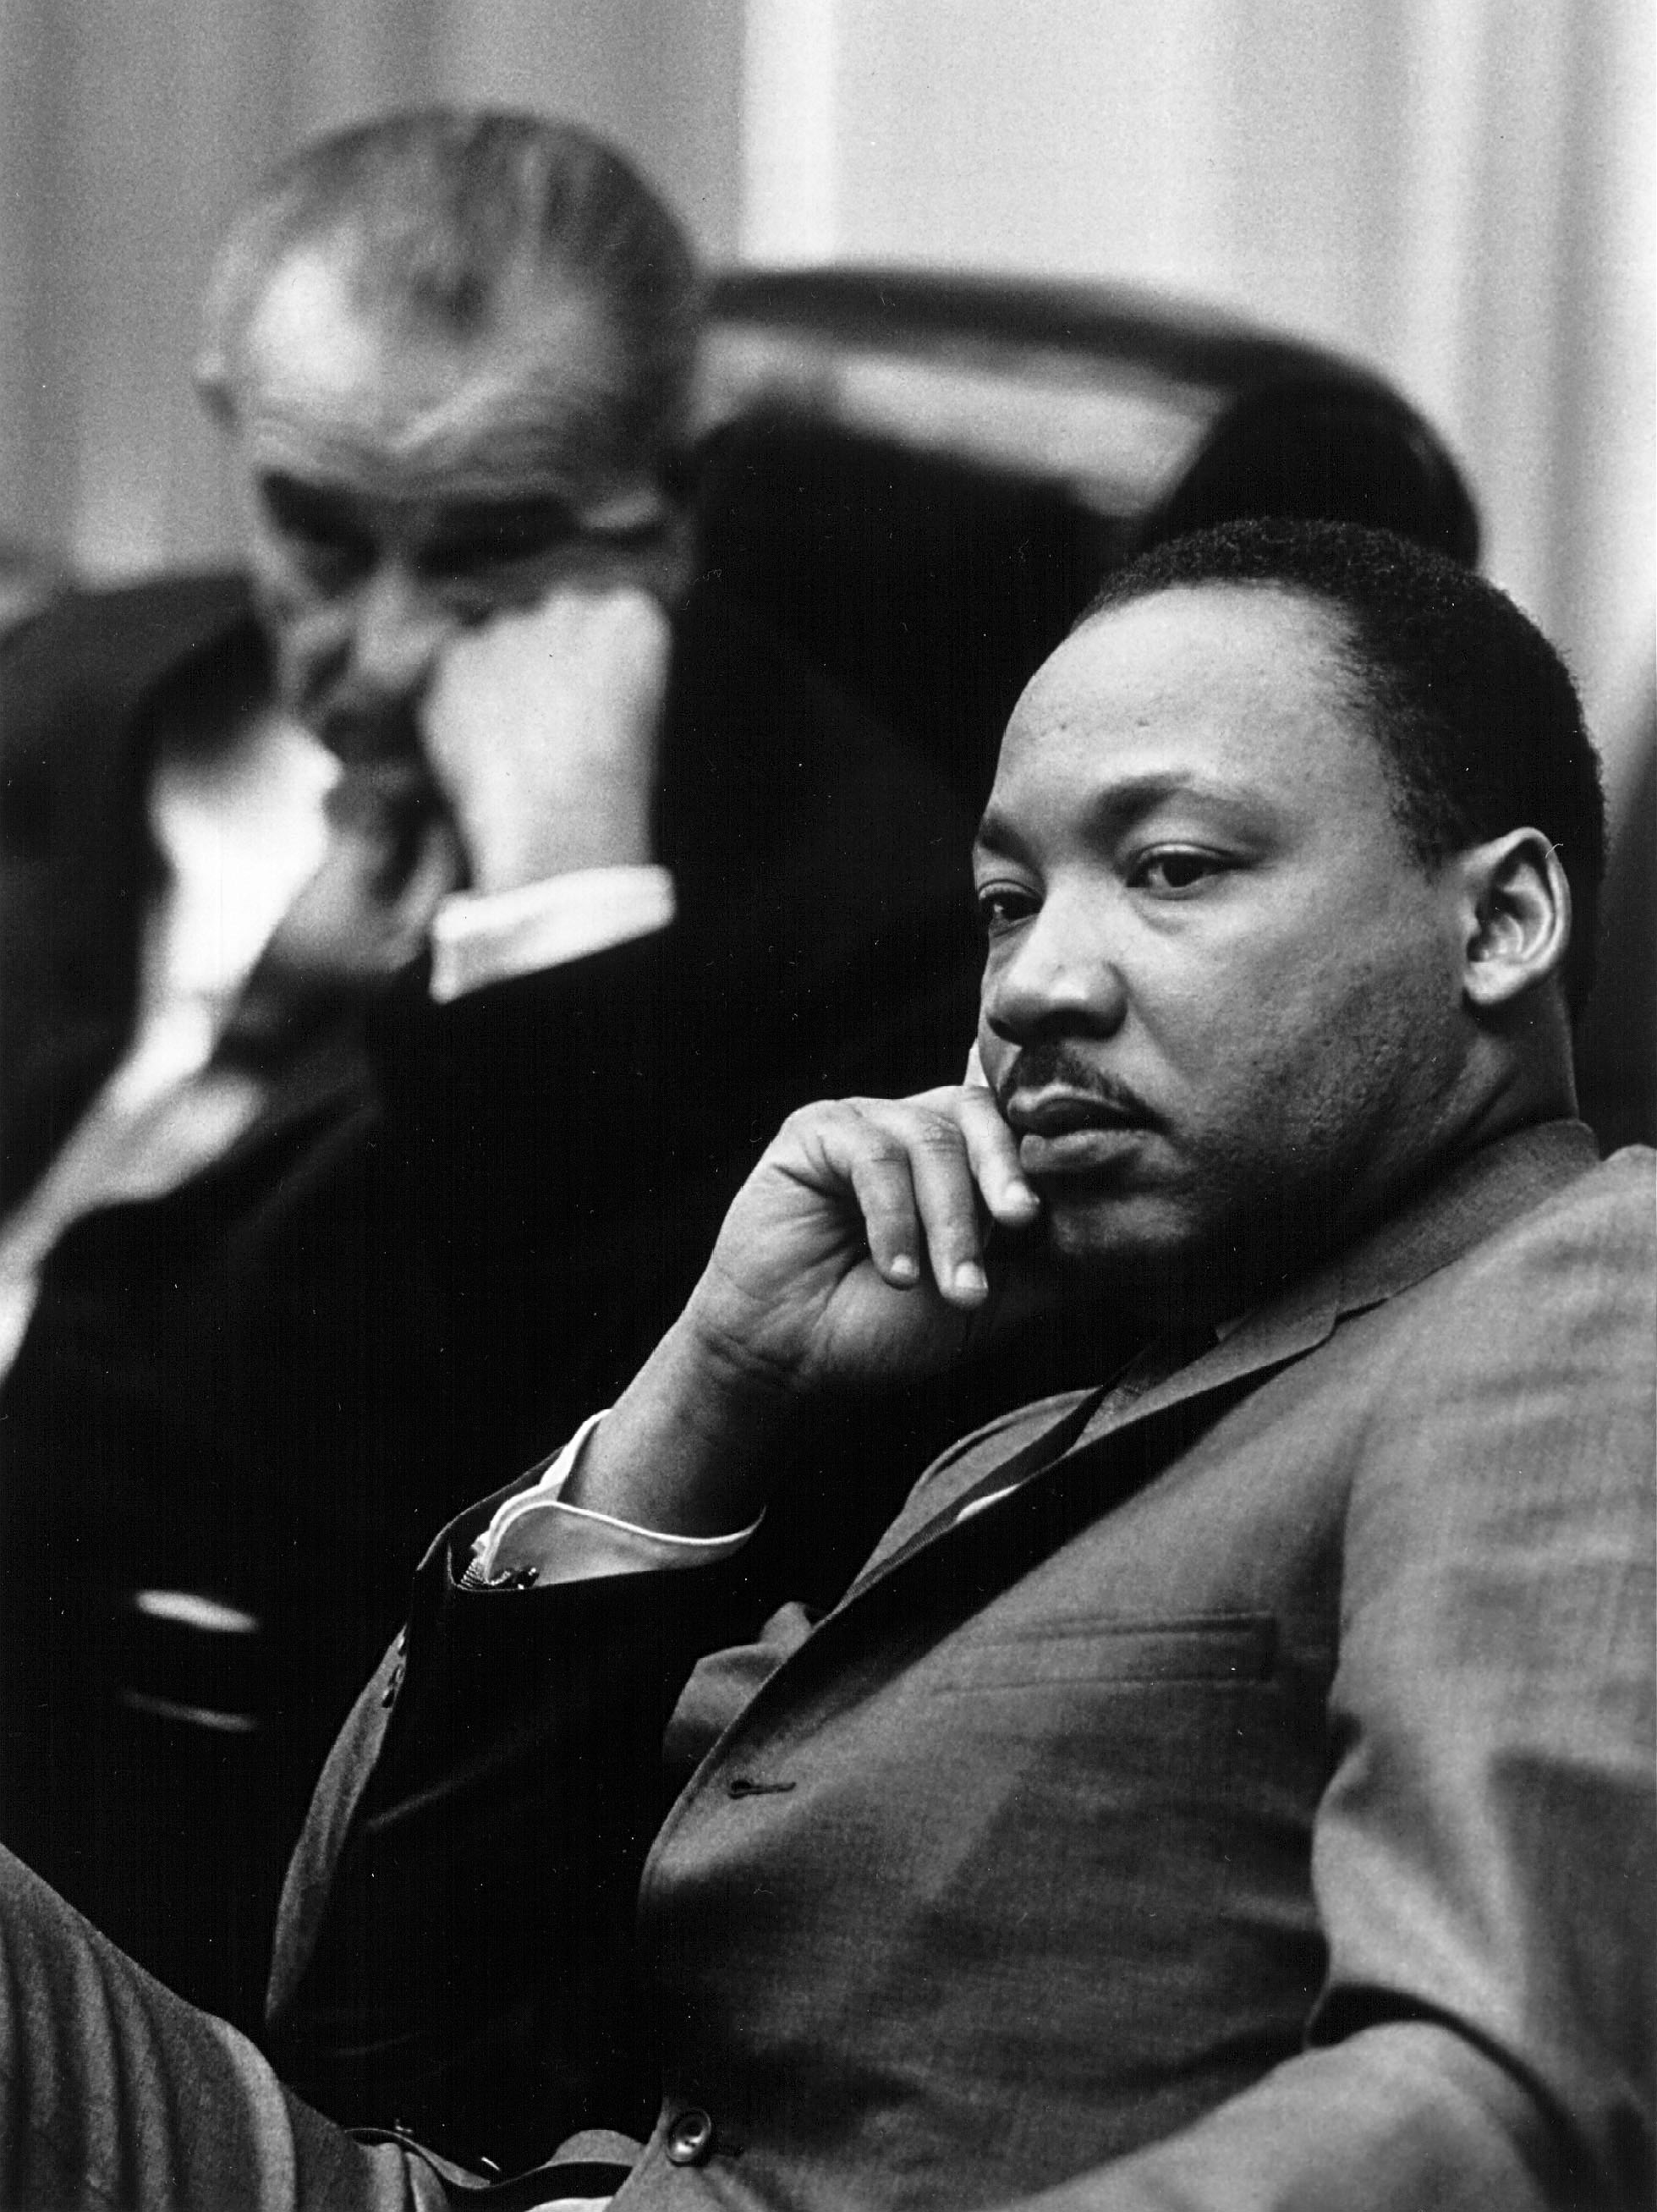 Rev. Martin Luther King Jr. with President Lyndon B. Johnson in the background March 18, 1966 at the White House. | Photo: GettyImages